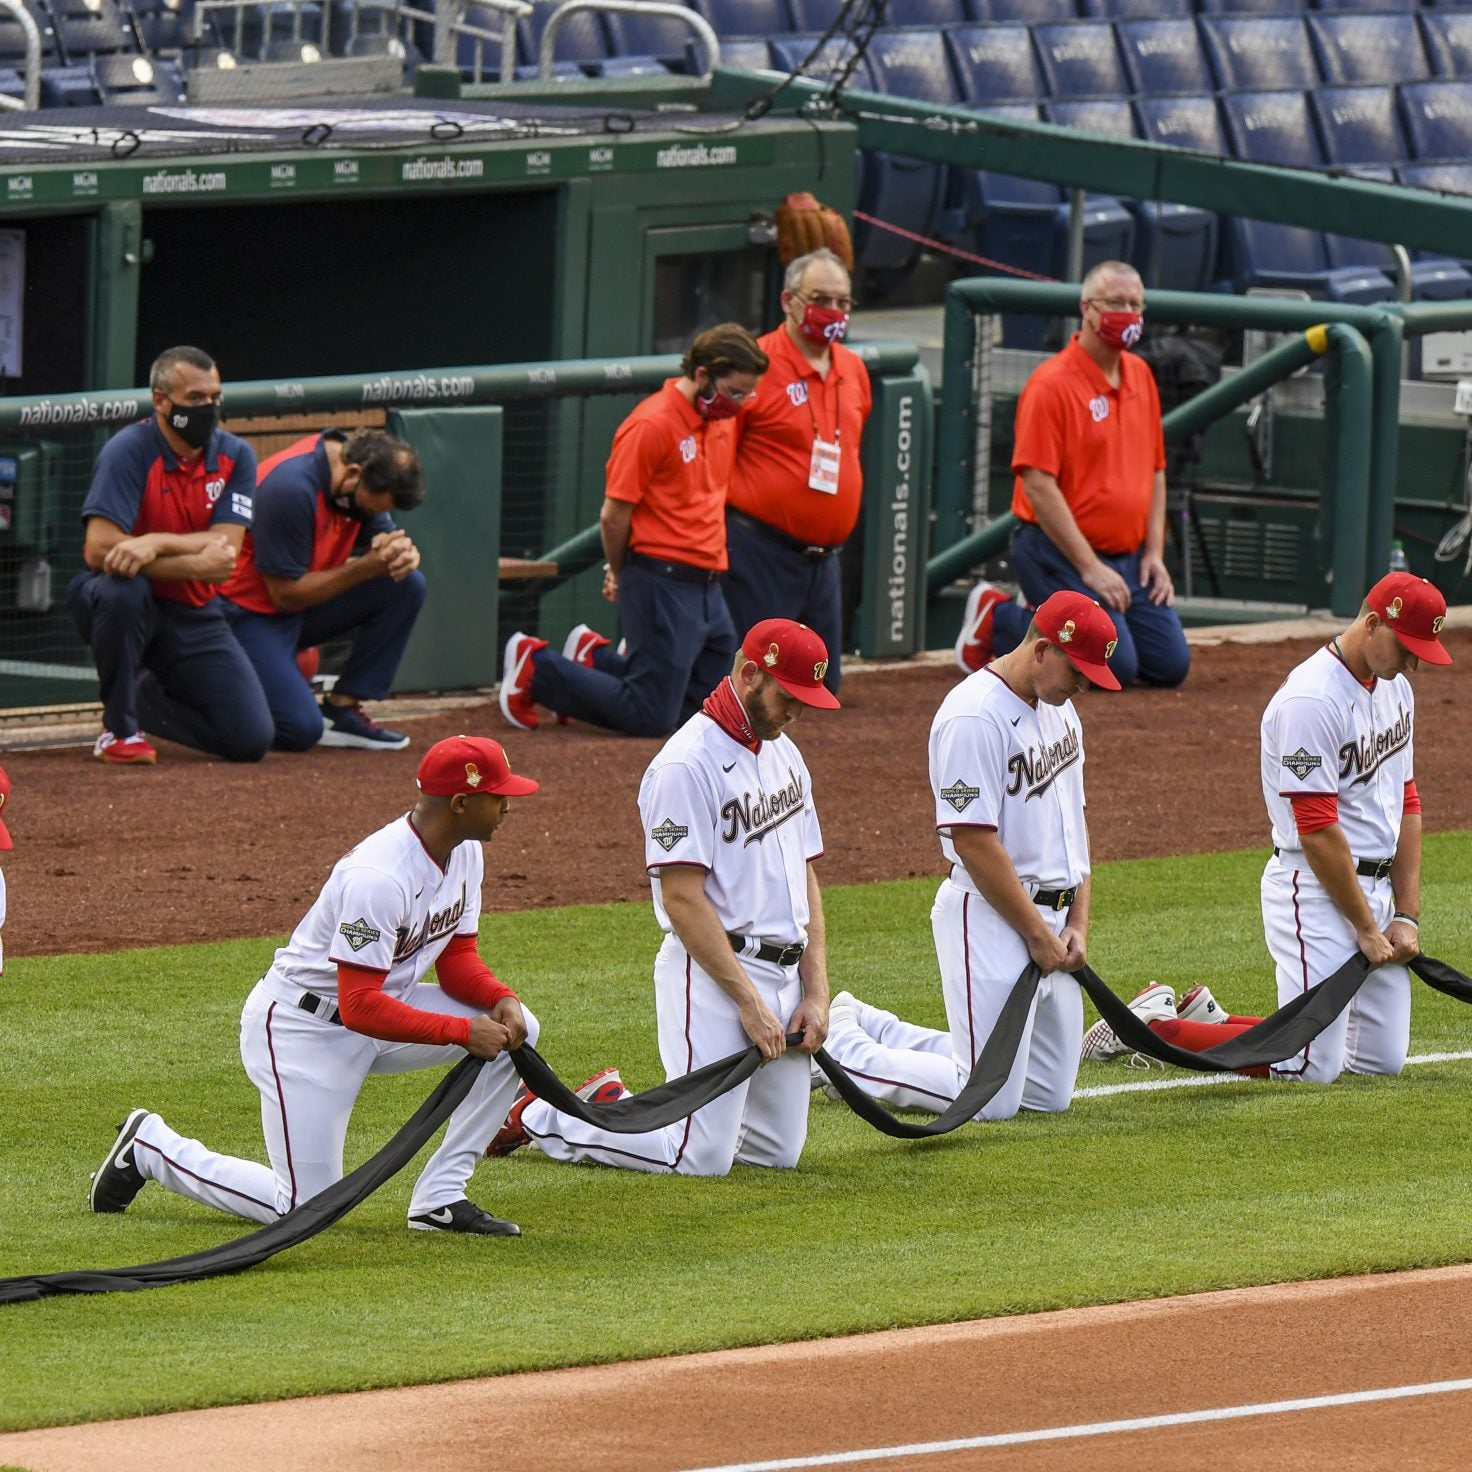 On Opening Day, Every Baseball Player Took A Knee To Support Black Lives Matter Movement